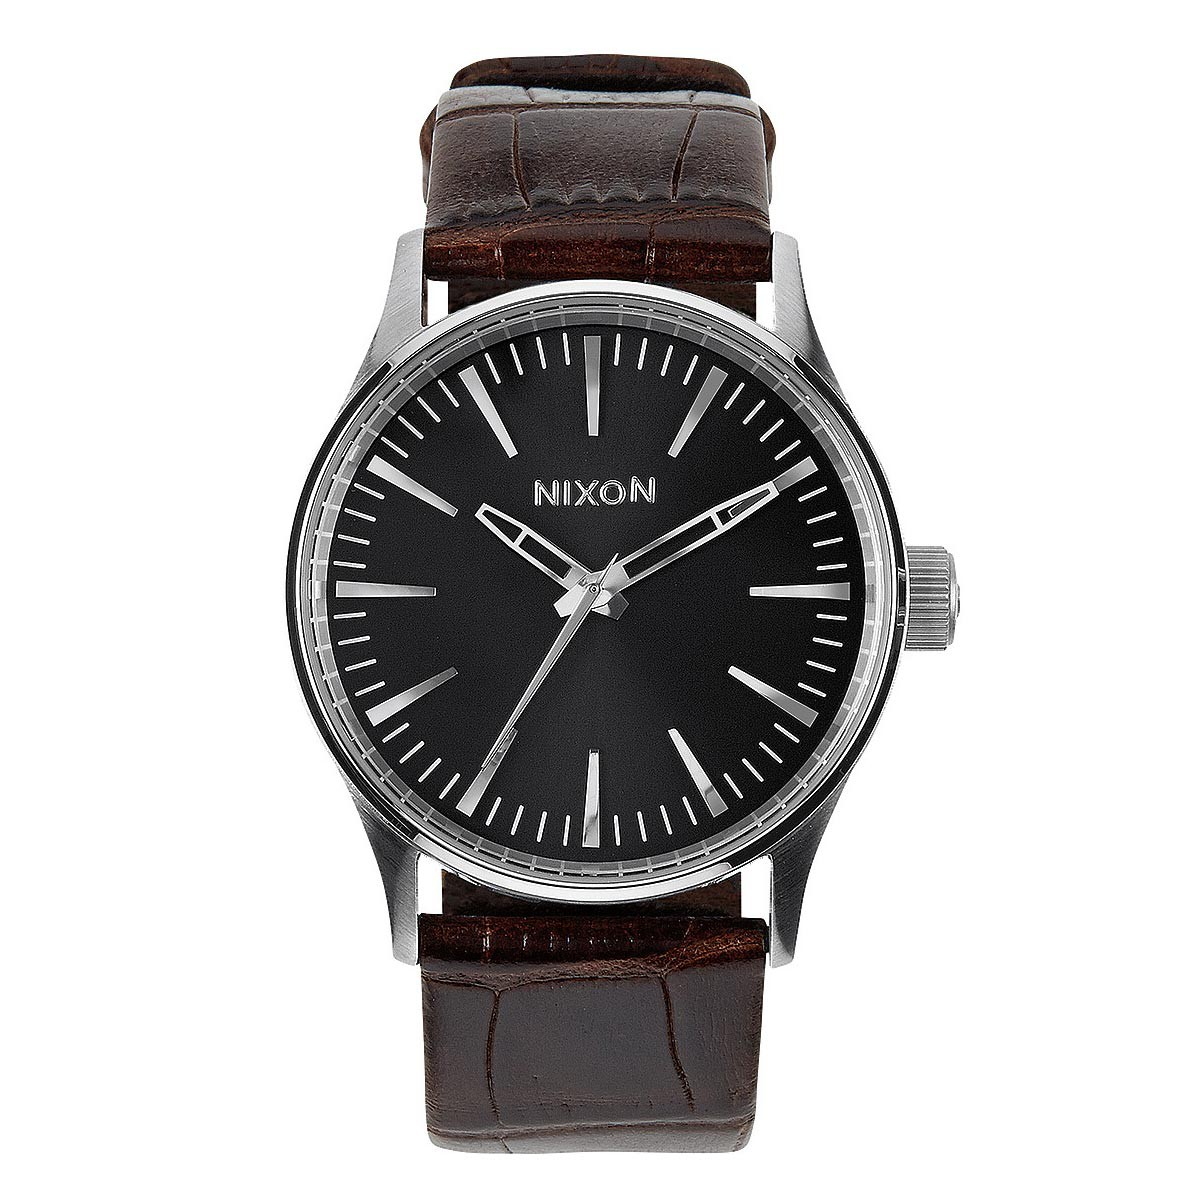 Hodinky Nixon Sentry 38 Leather brown gator